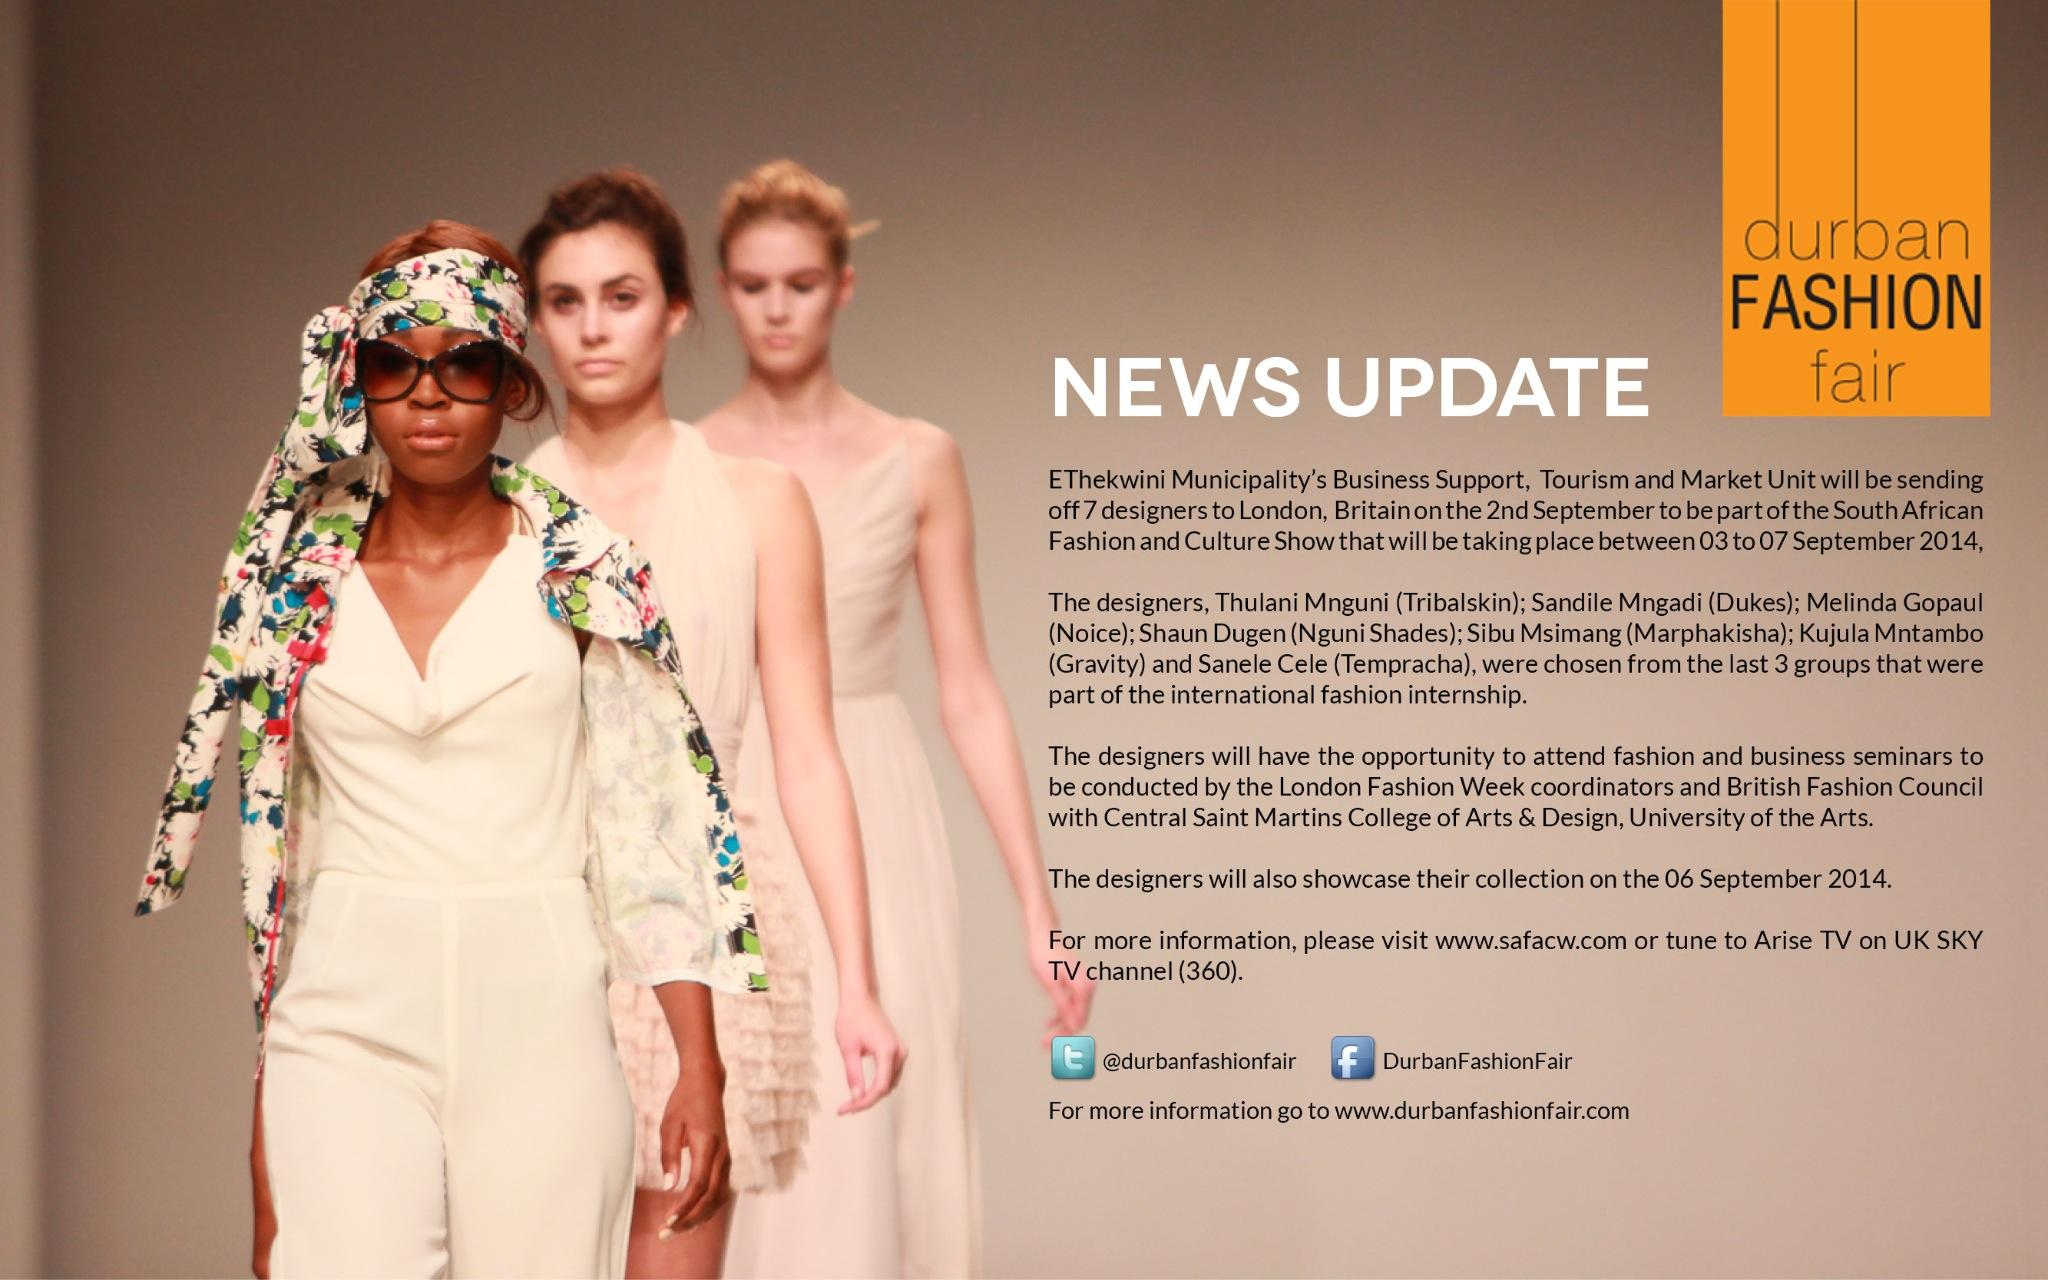 Durbanfashionfair On Twitter 7 Designers Will Be Part Of South African Fashion And Culture Show That Will Be Taking Place In London 3 7 Sept 2014 Http T Co Lkjqdgnvgd